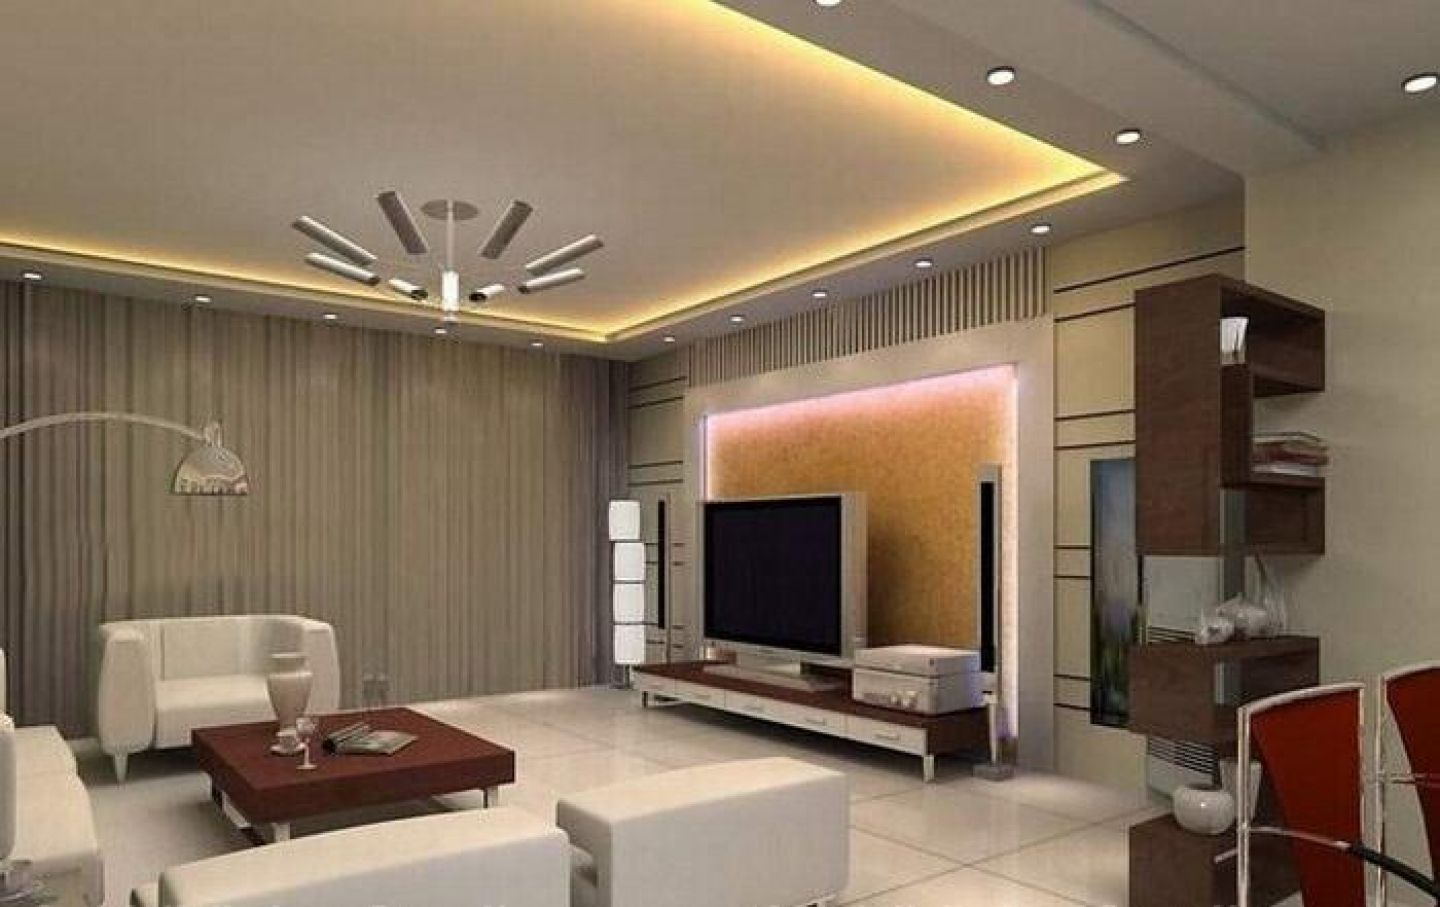 High ceilings pact living room ceiling 198 affordable modern pop false ceiling designs